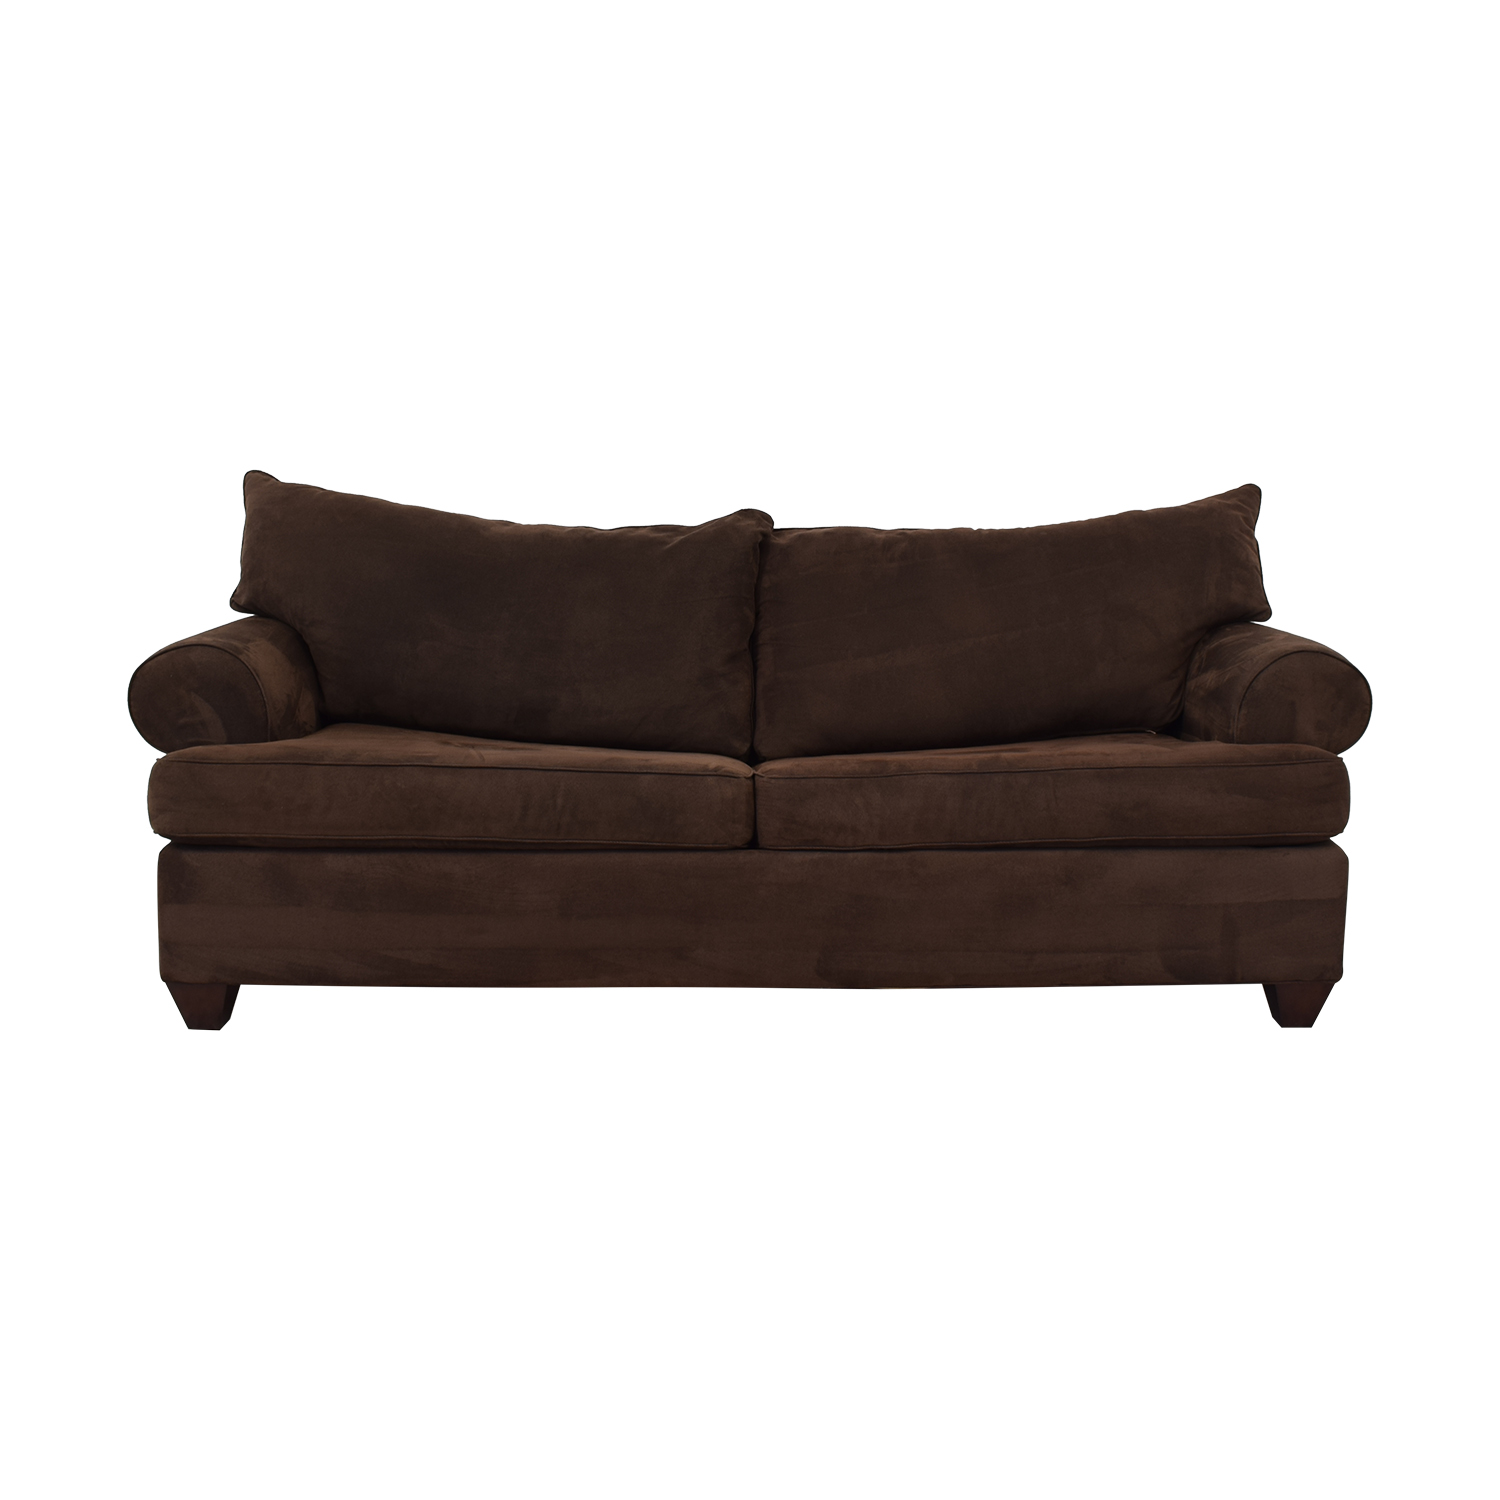 Bauhaus Furniture Bauhaus Furniture Rochester Java Roll-Arm Sofa Bed Brown